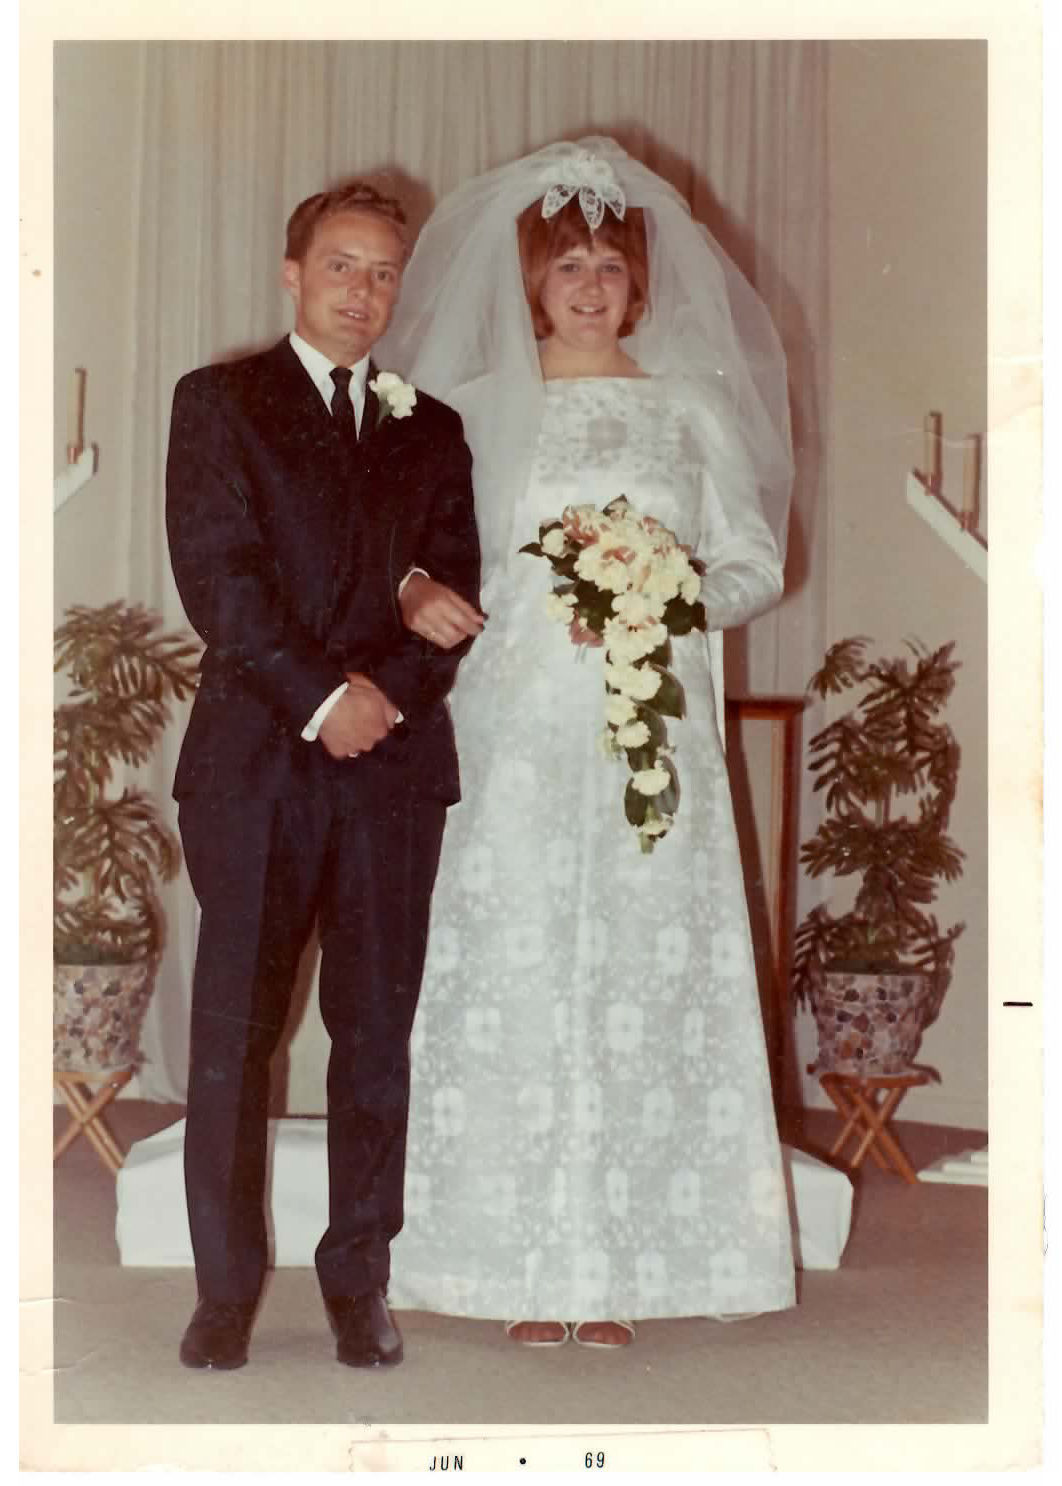 Larry and Mary Ann Gilmore